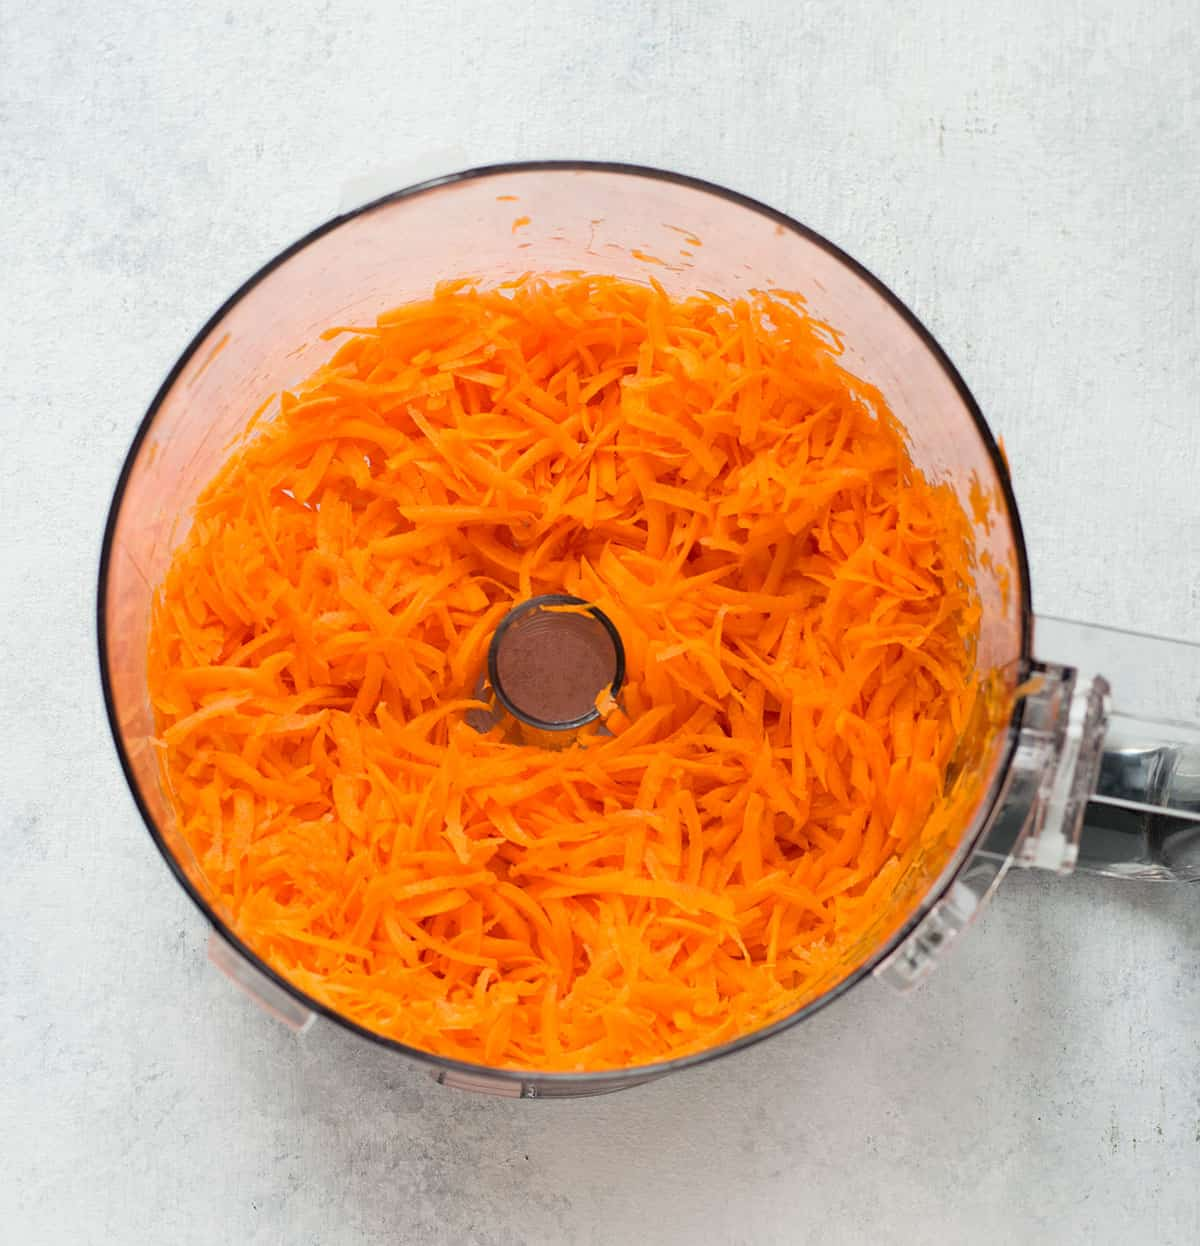 shredded carrots in bowl of food processor